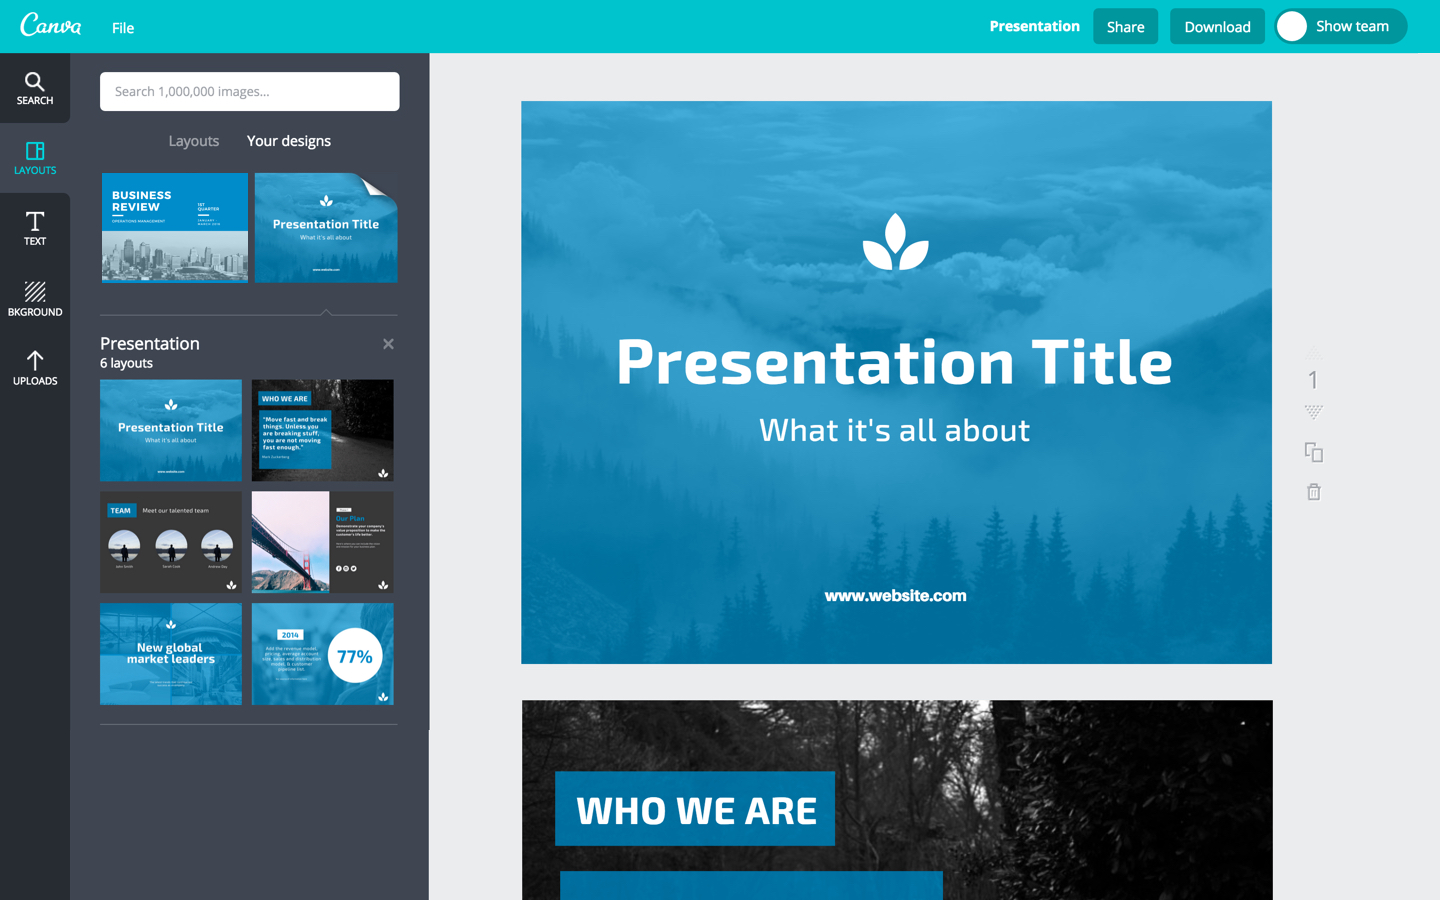 Design Platform Canva Scores $15 Million Series A, Valued At $165